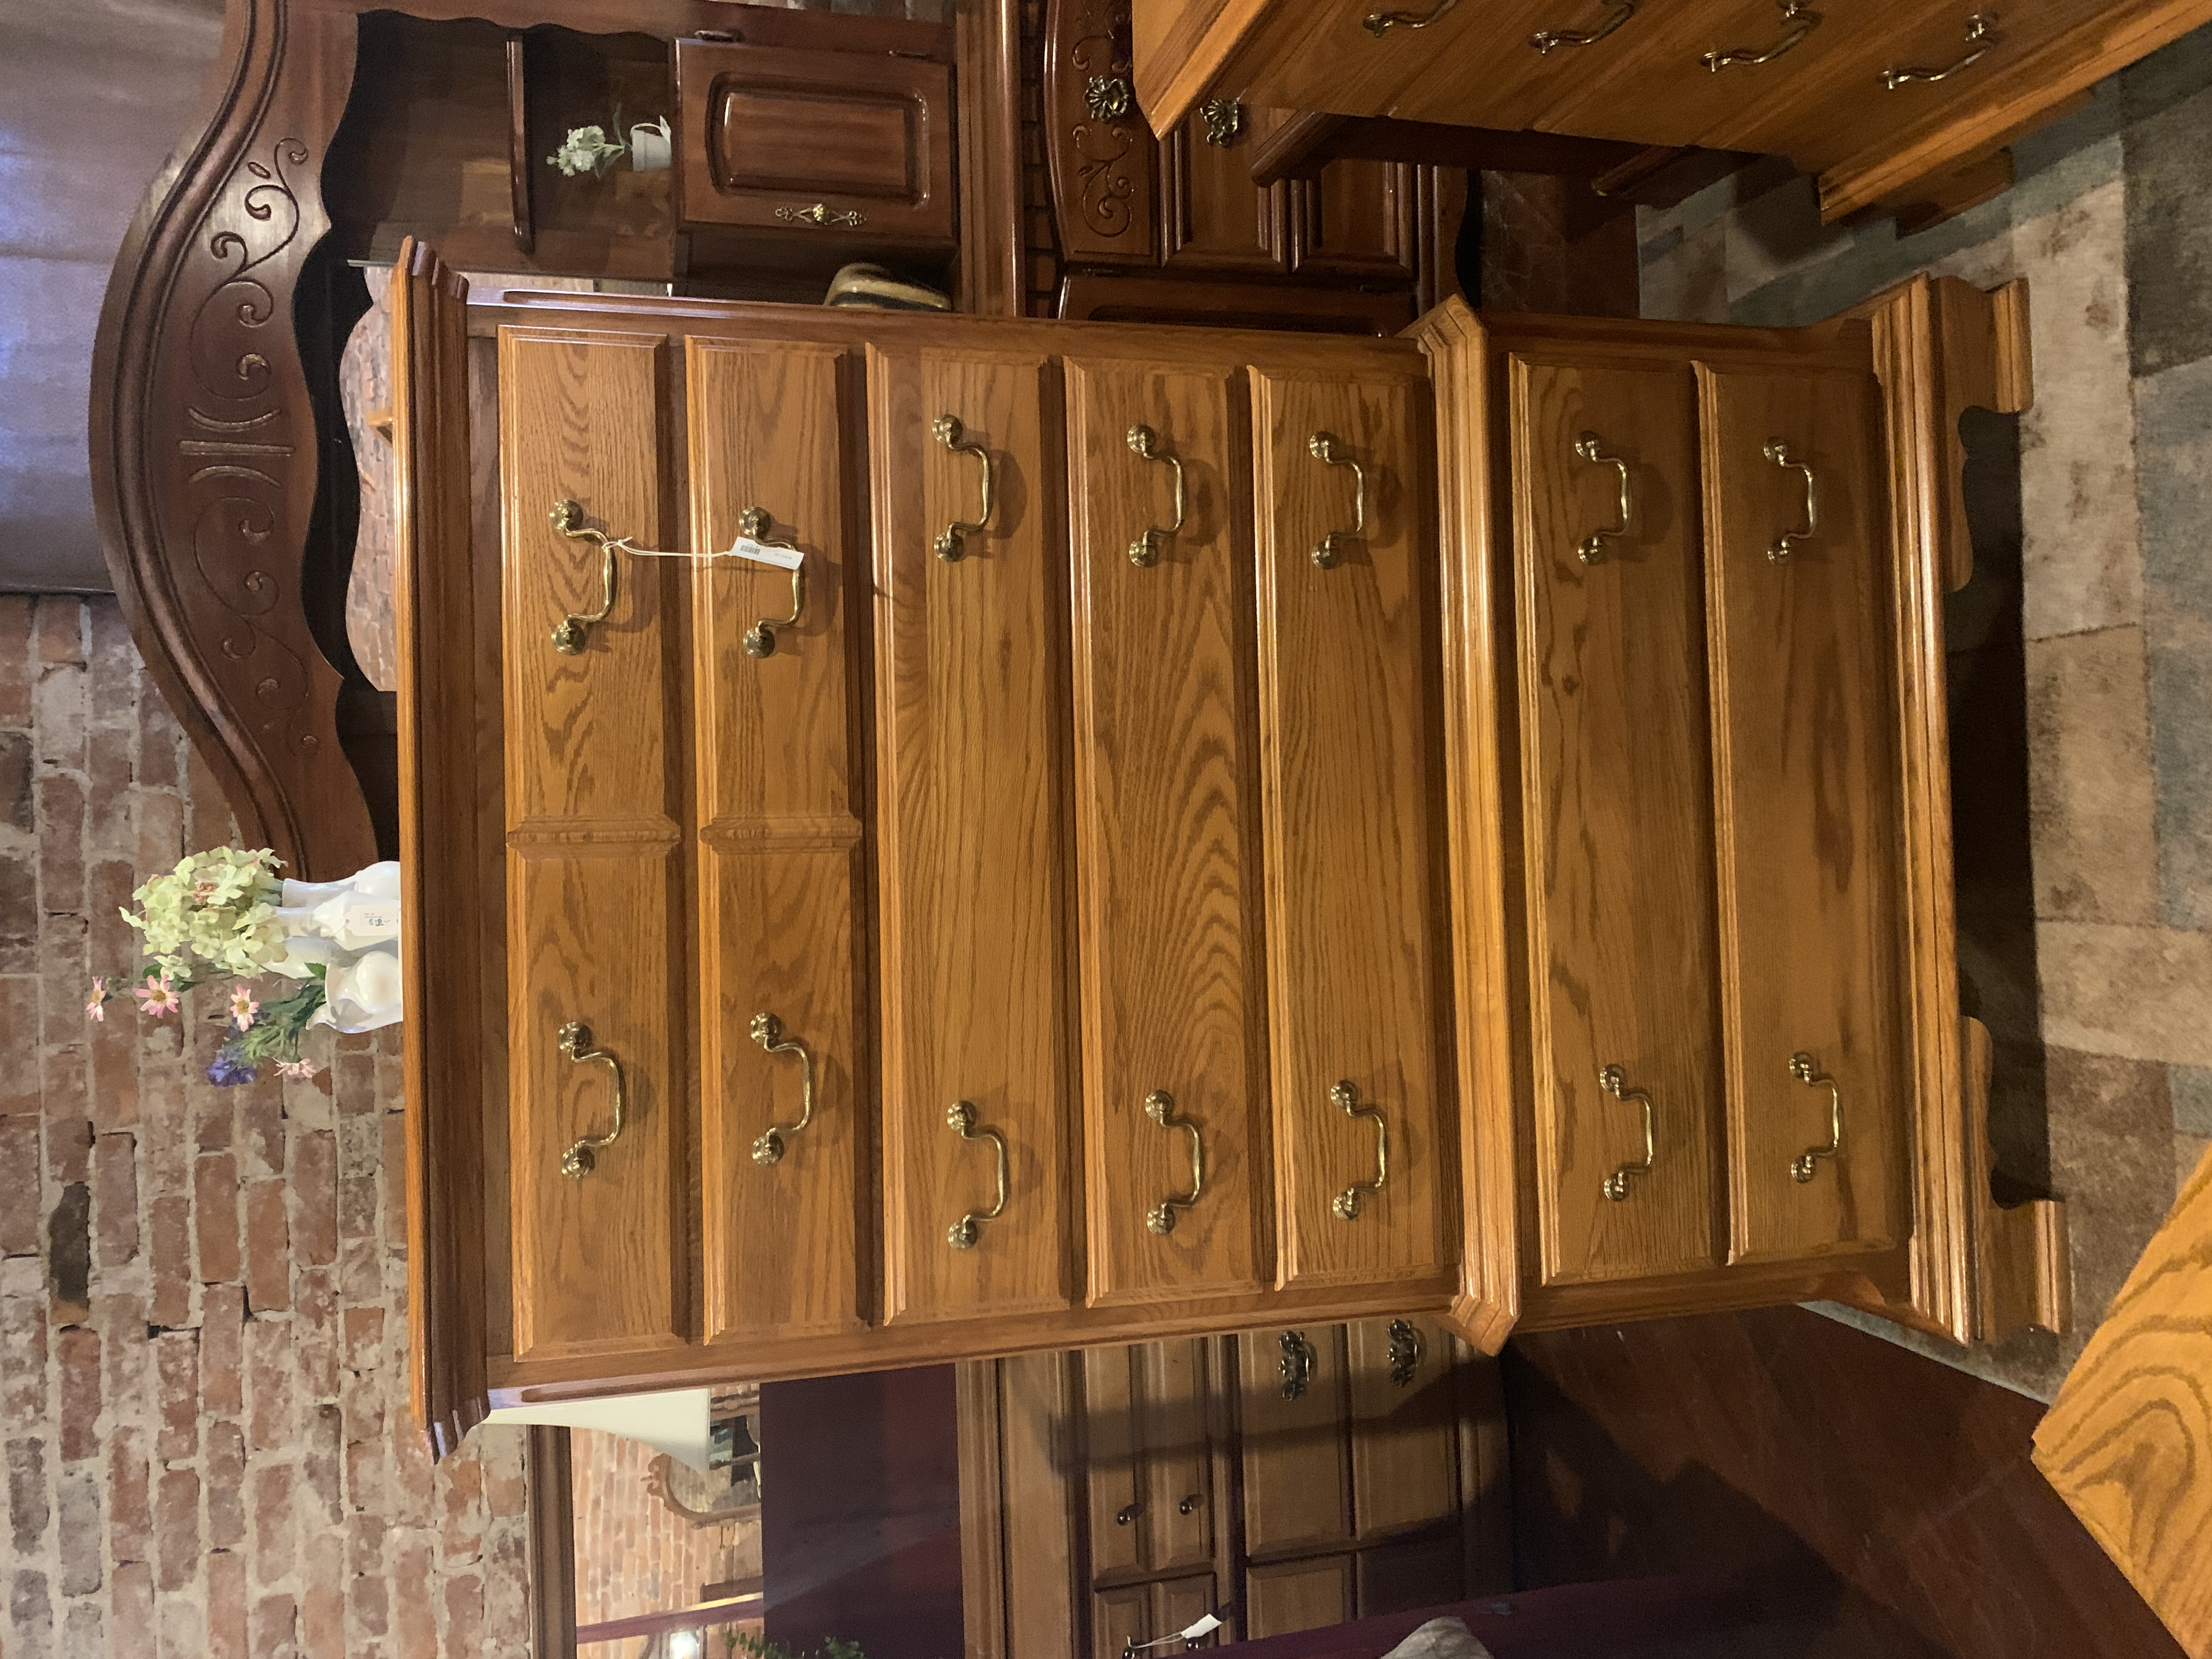 SUMTER OAK CHEST OF DRAWERS